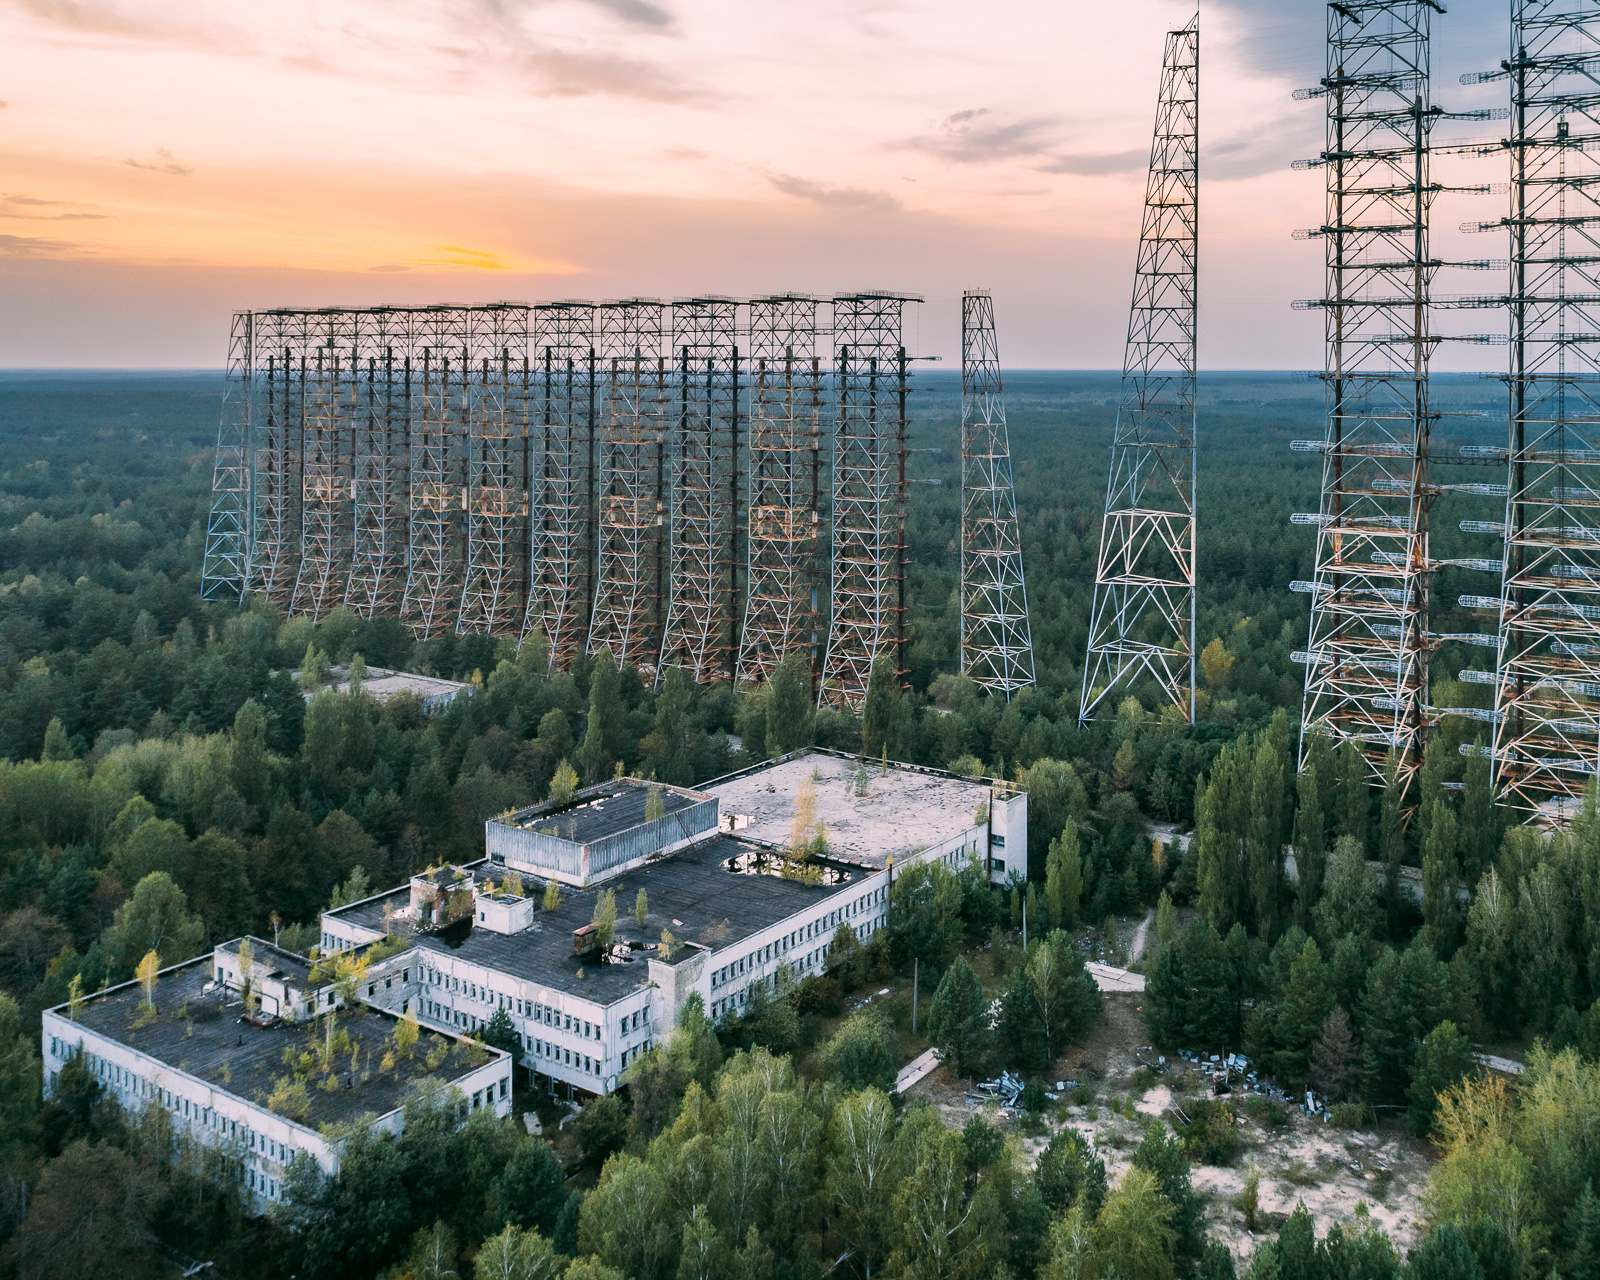 duga Duga known as the Russian Woodpecker   Military Radar Station in Chernobyls Irradiated Forest